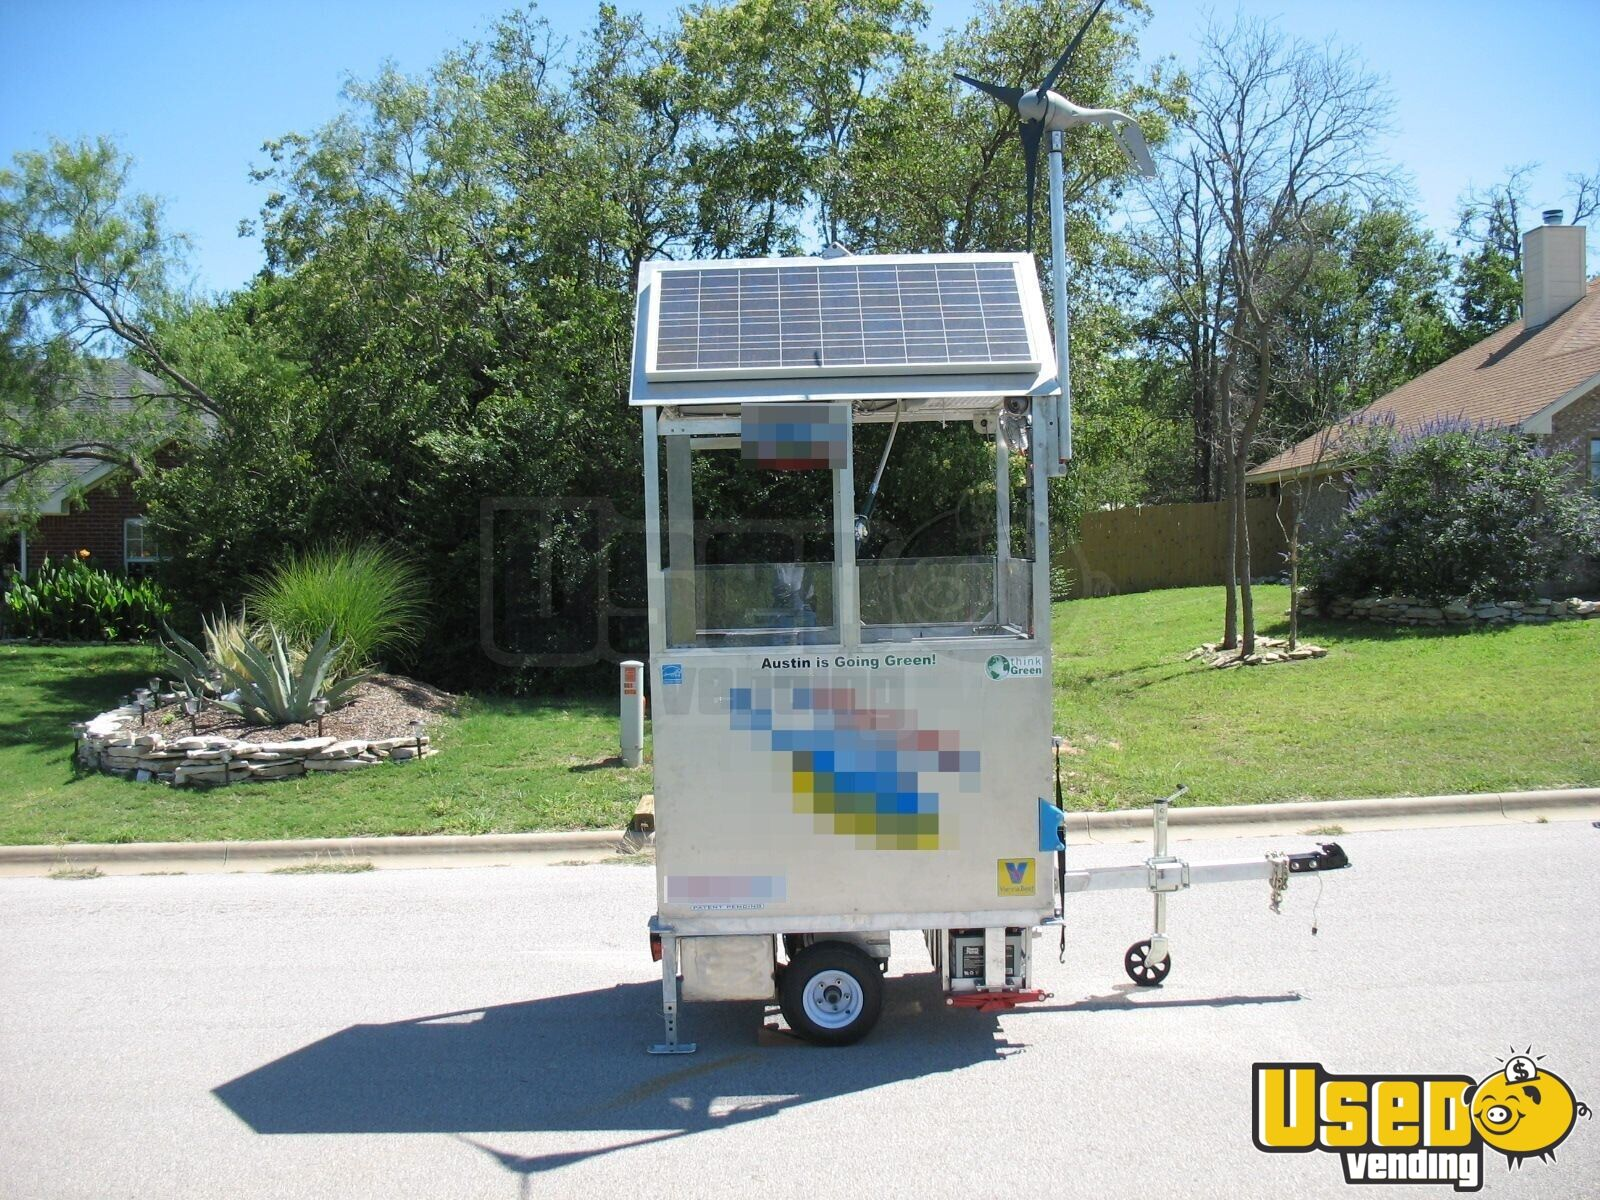 2009 Top Gun Top Dog Self Sufficient Mobile, Model Slt Cart 48 Texas for Sale - 48